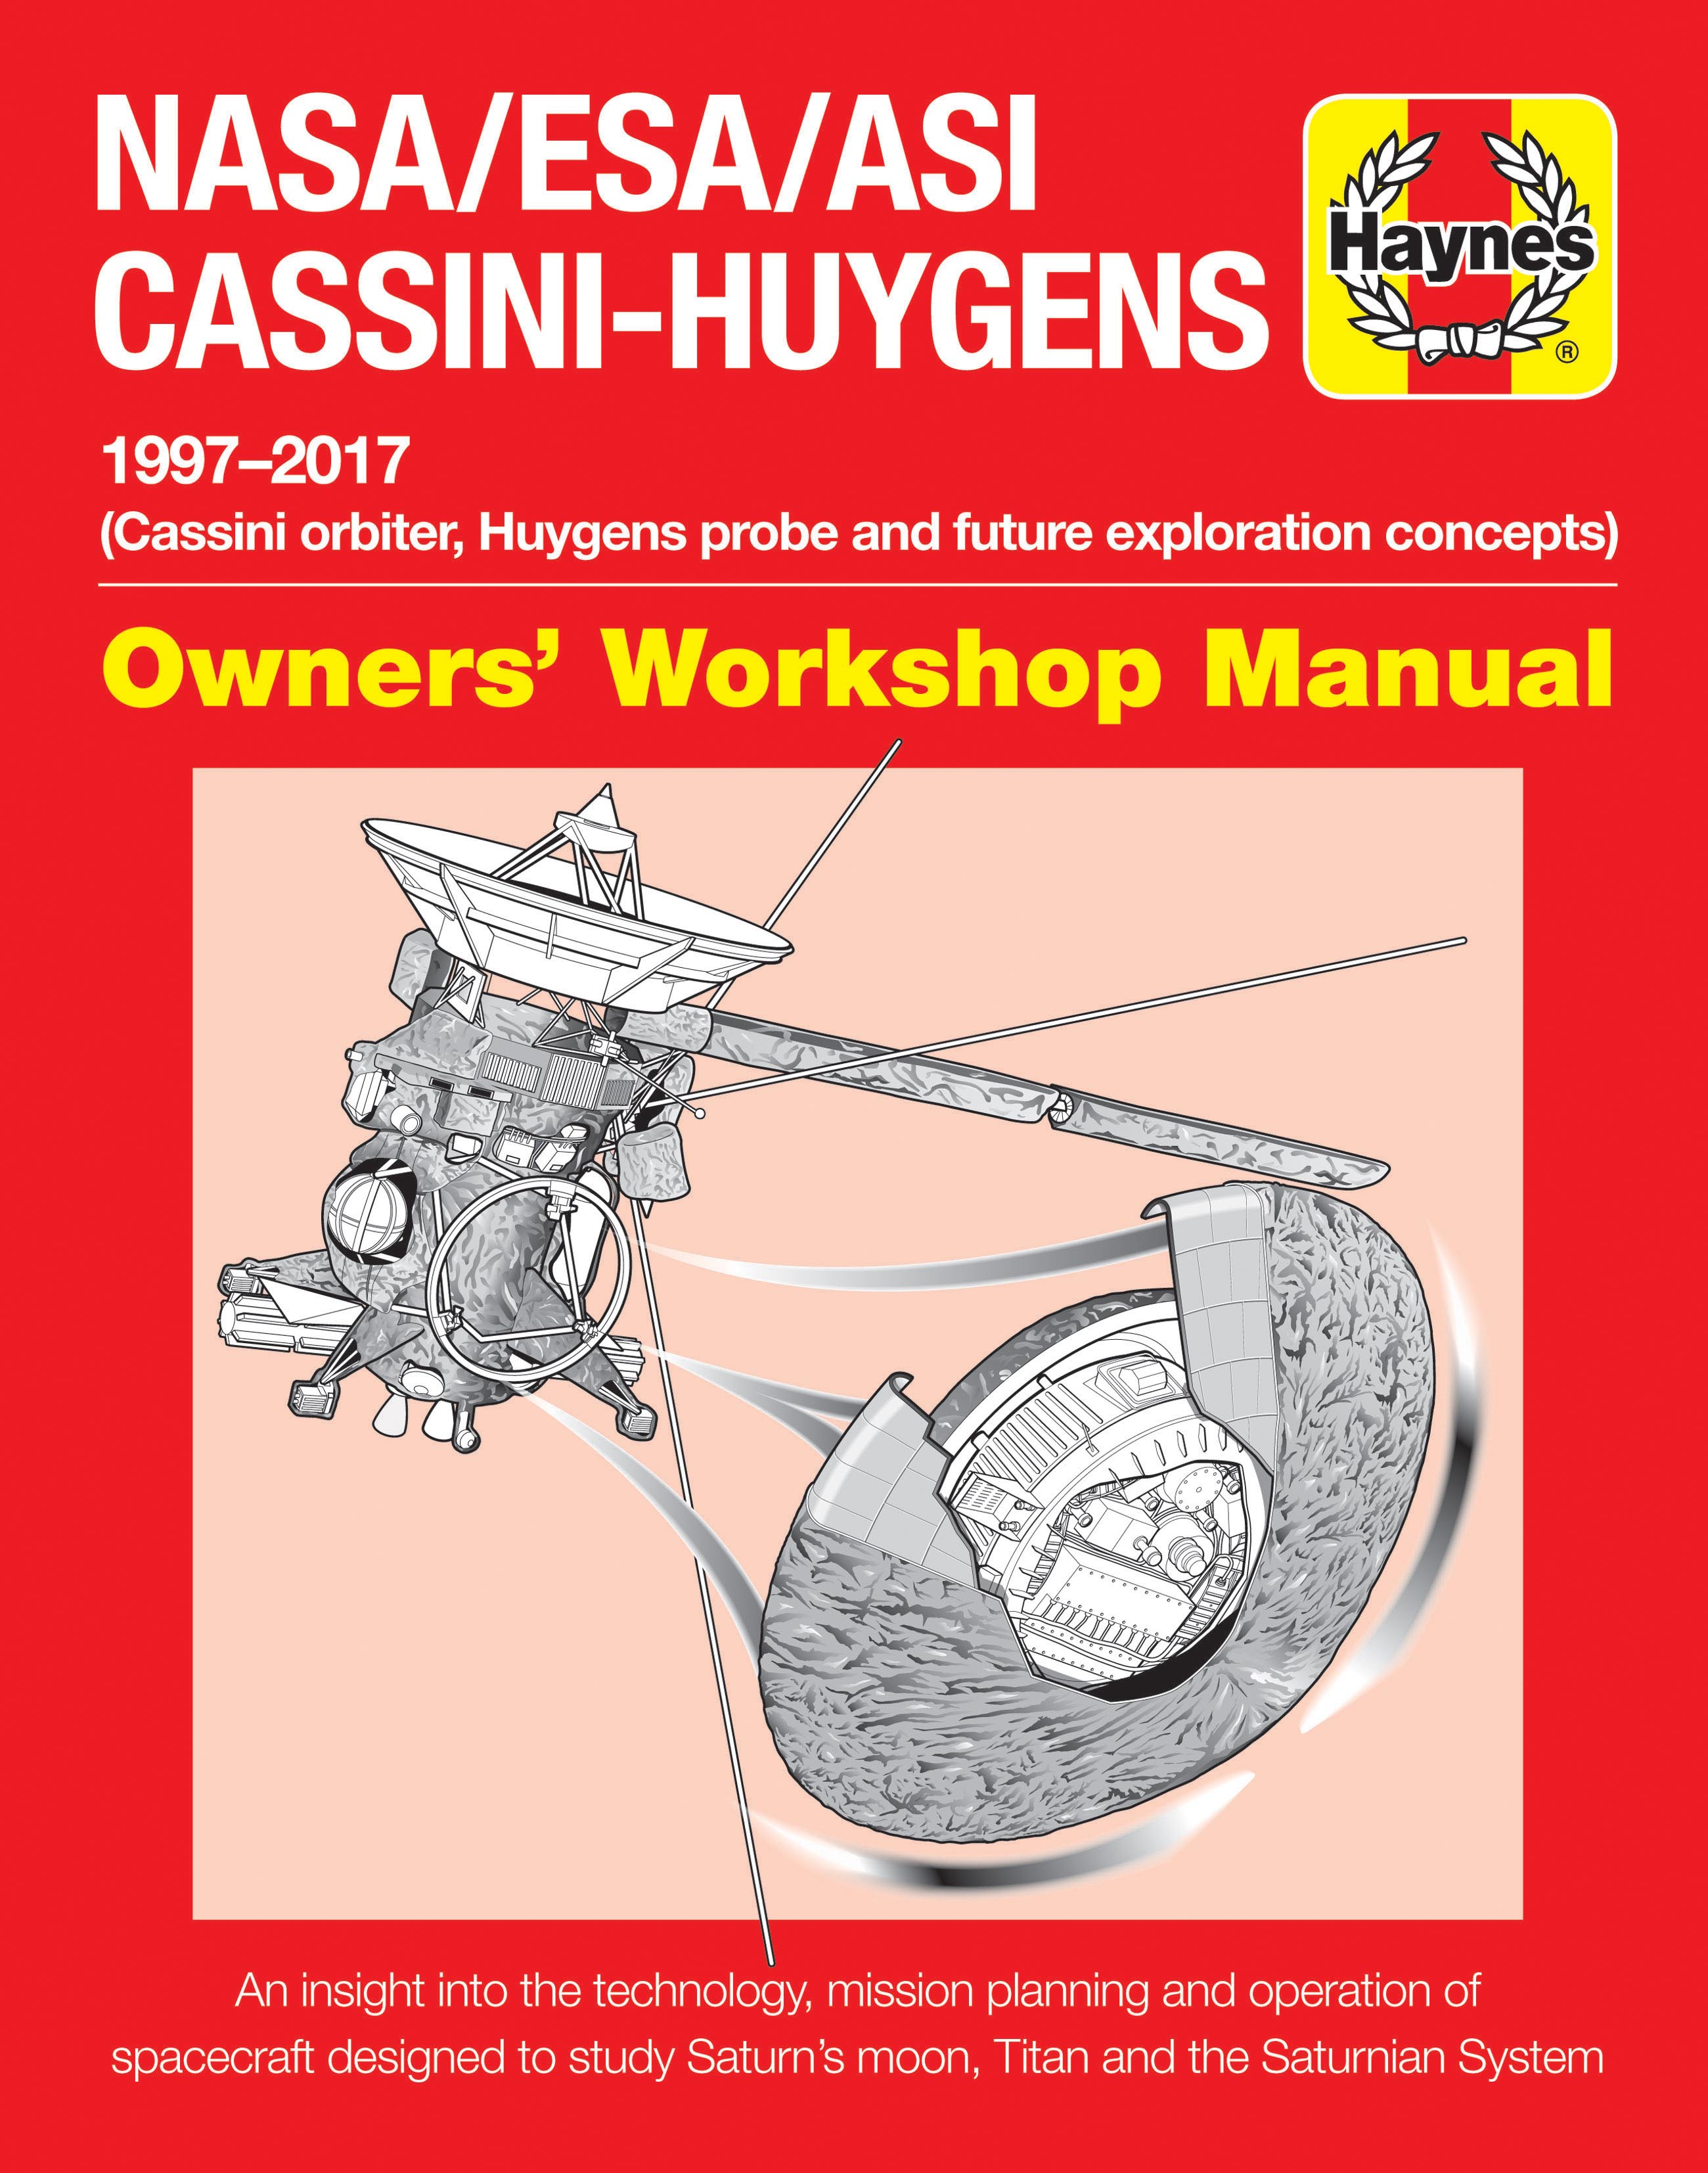 NASA/ESA/ASI Cassini-Huygens Owners' Workshop Manual